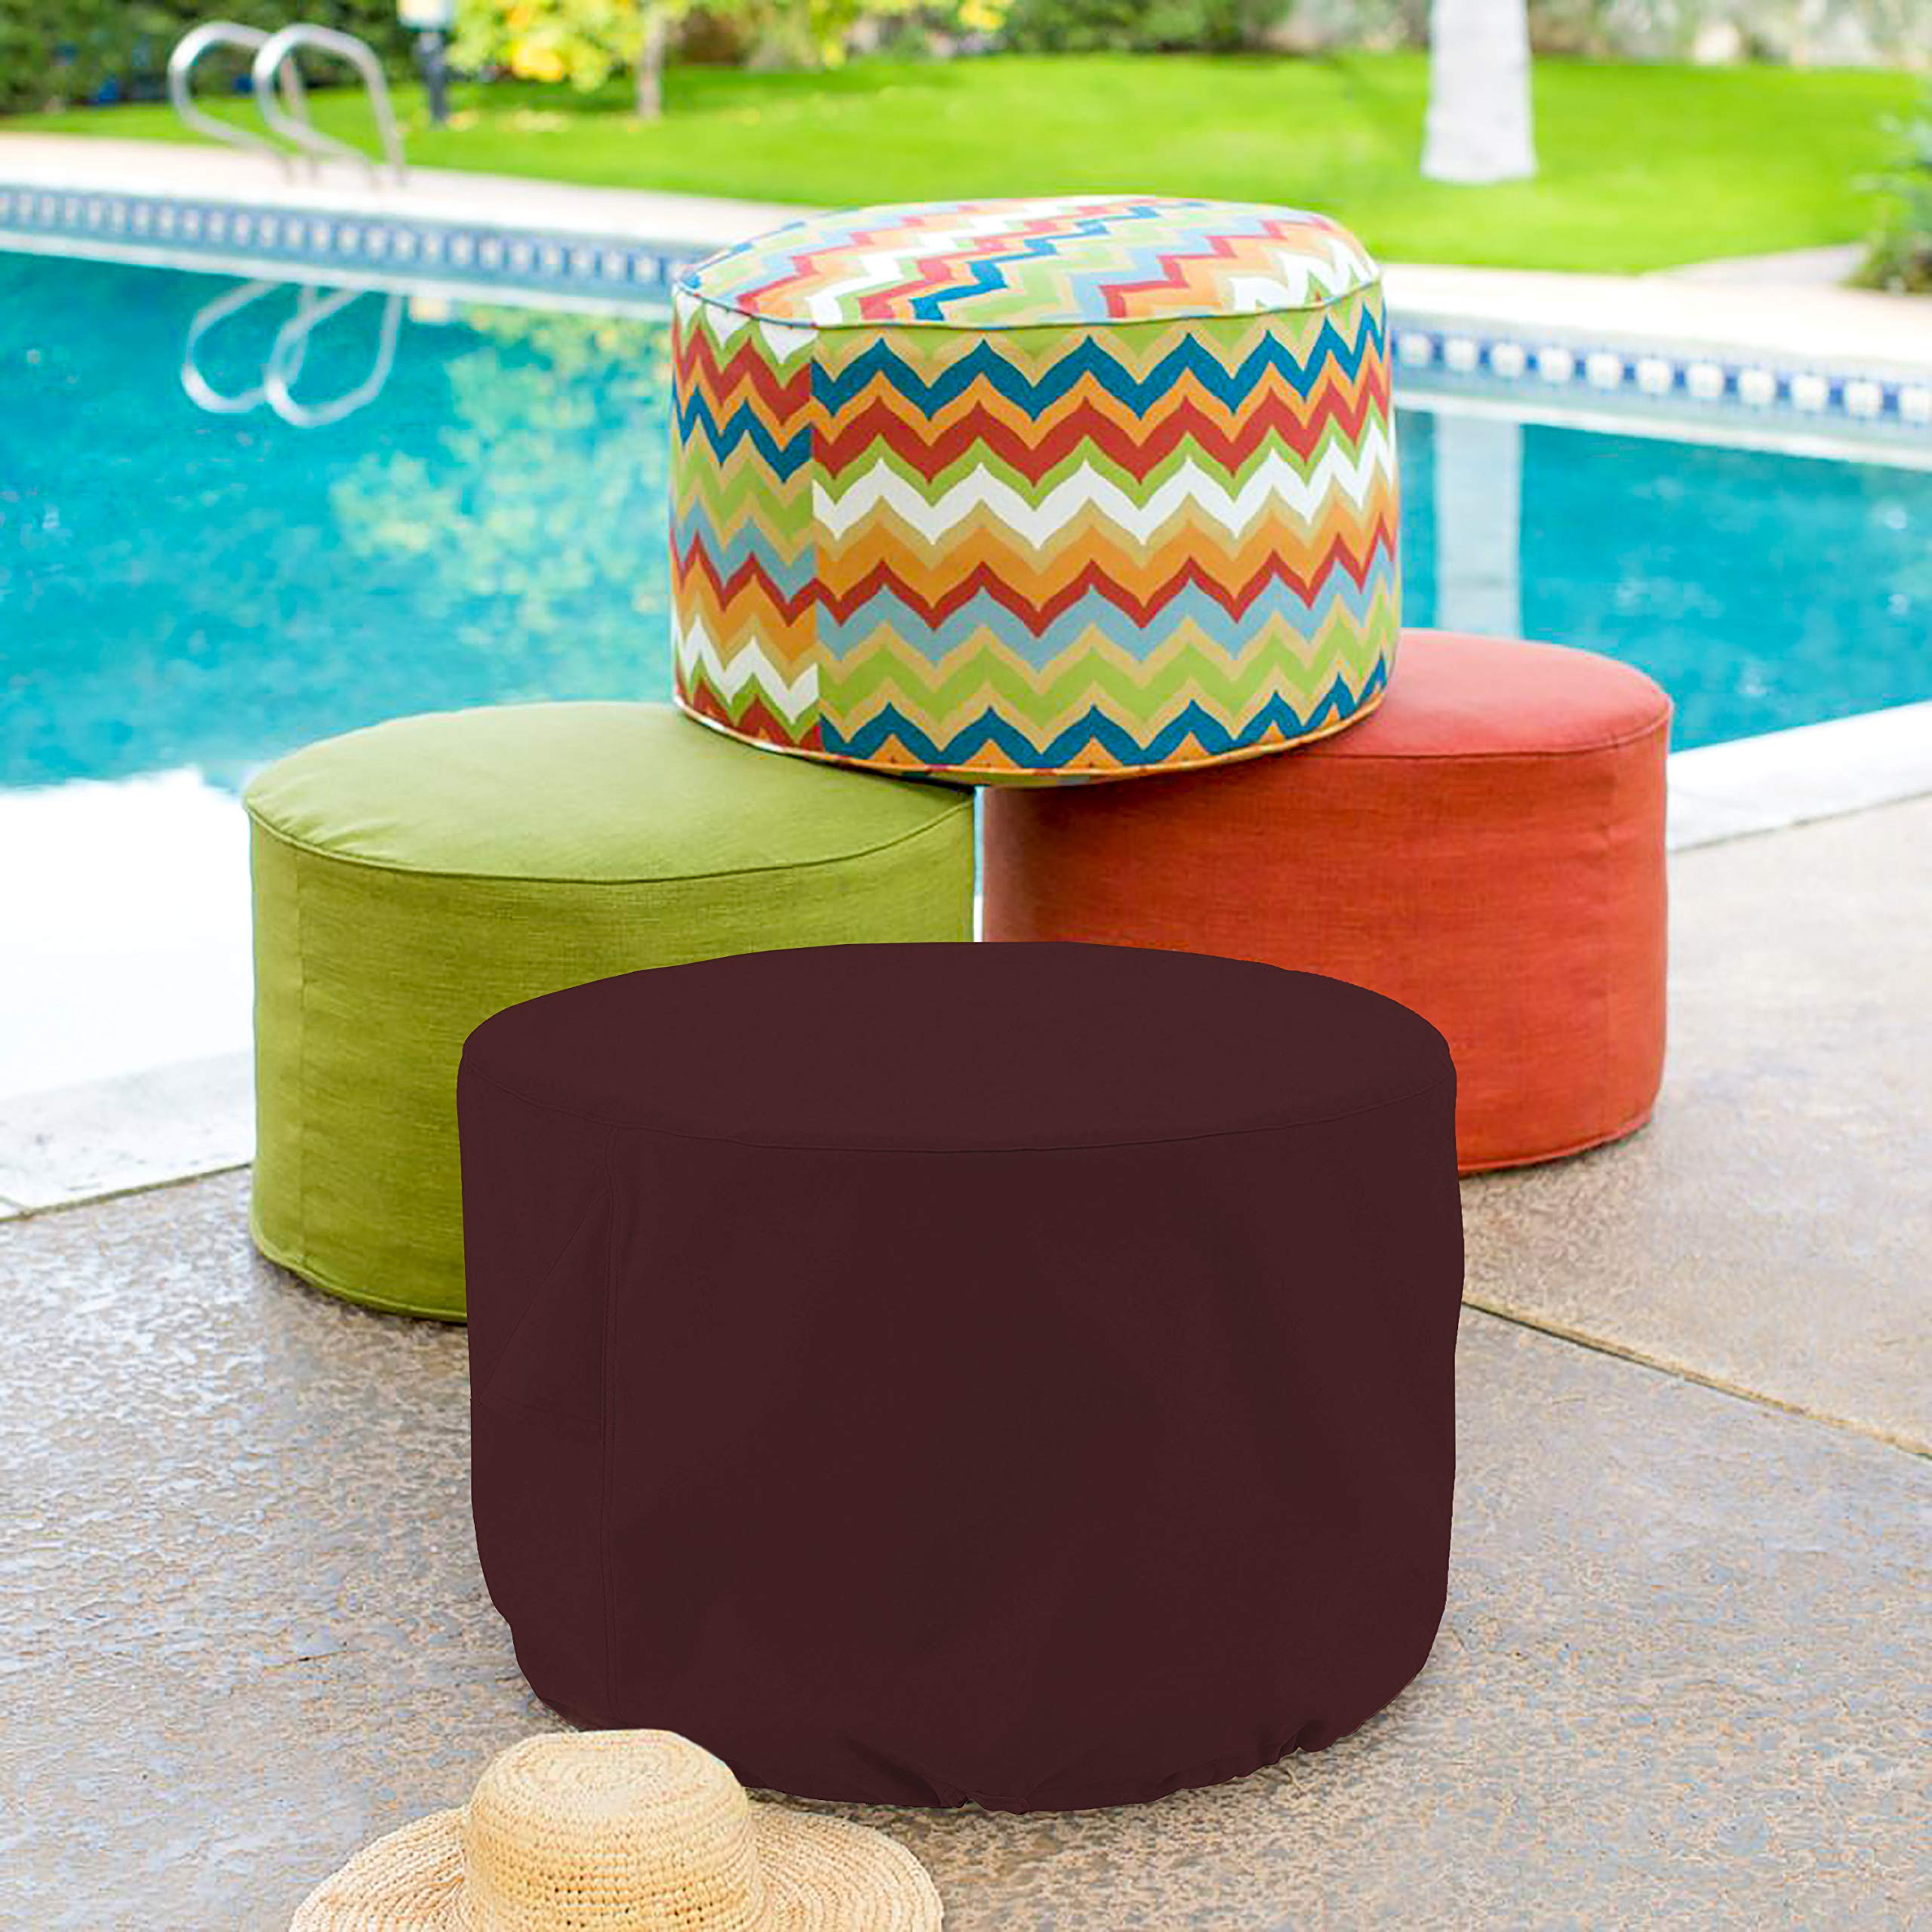 Outdoor Ottoman Cover 18 Oz - Waterproof & Weather Resistant Patio Furniture Covers - Round Ottoman Cover Heavy Duty Fabric with Drawstring for Snug fit (50'' Dia x 24'' H, Burgundy) by COVERS & ALL (Image #6)